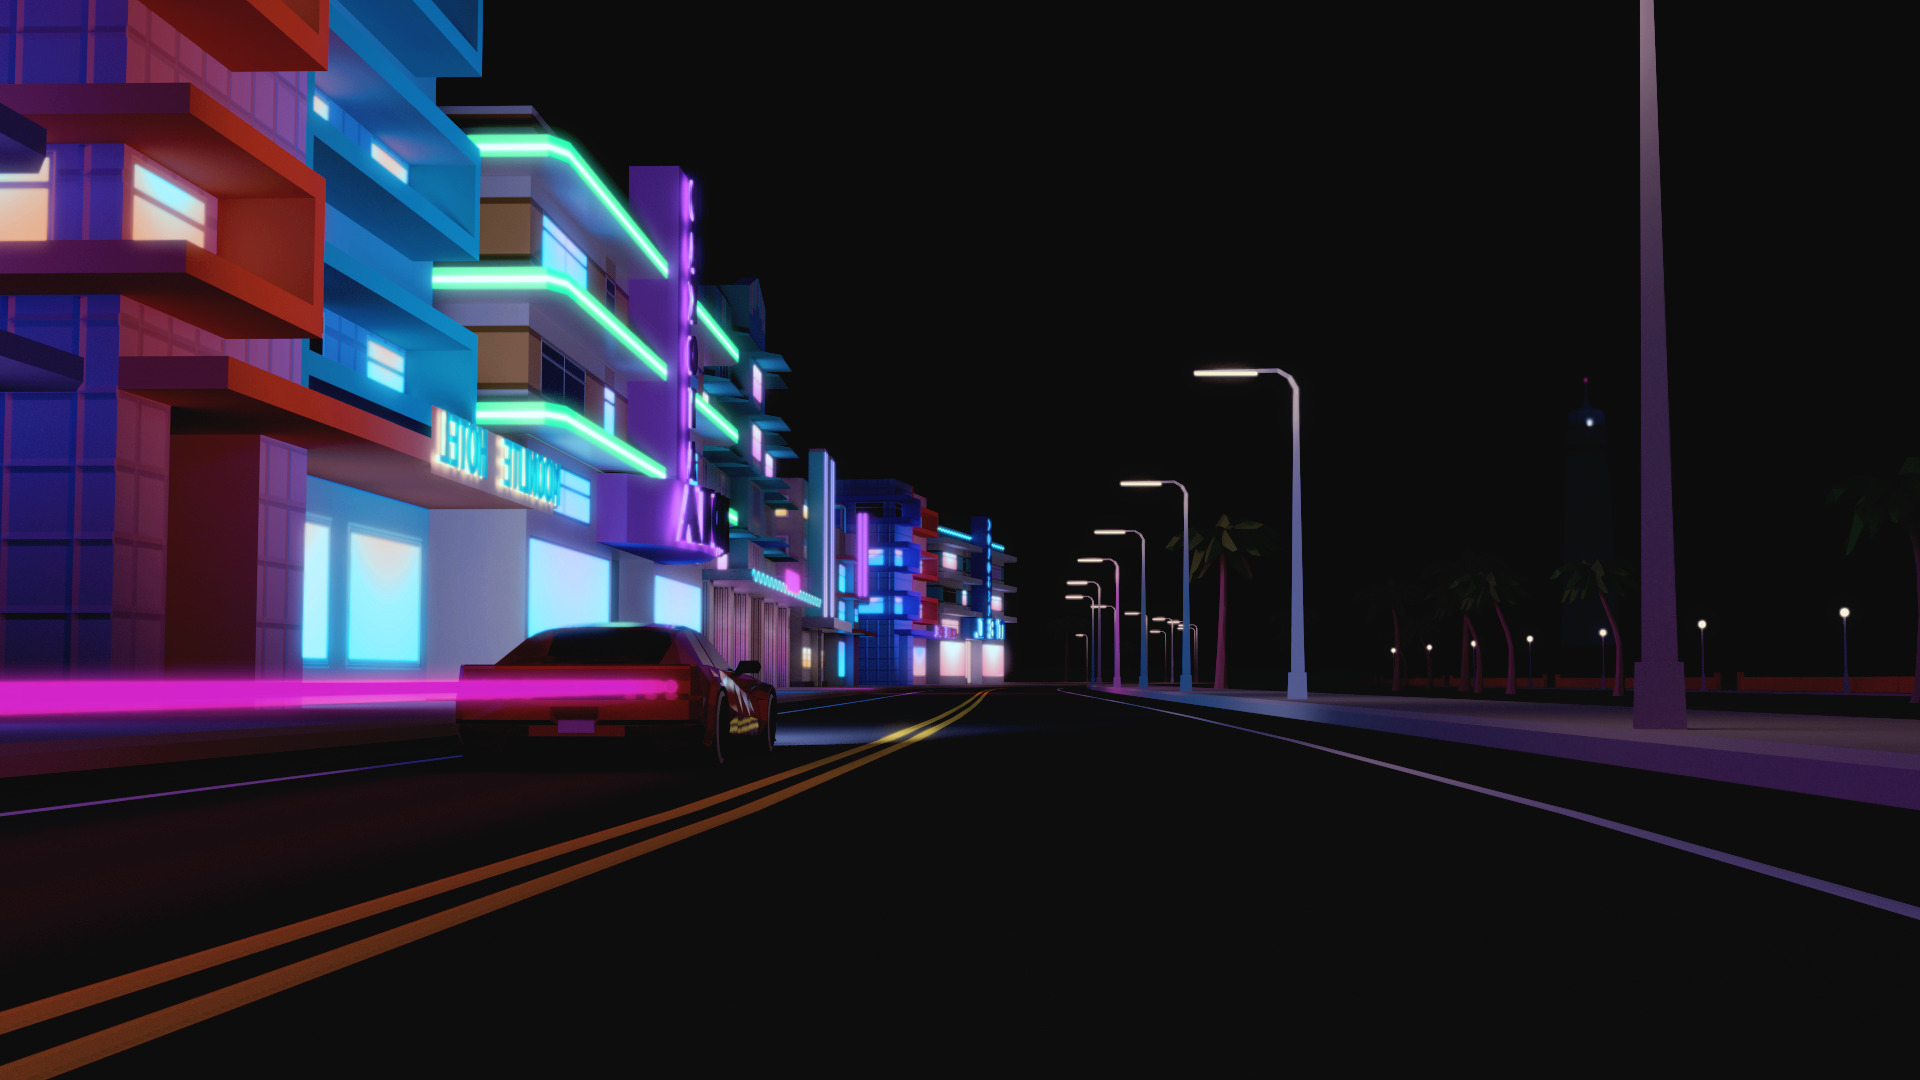 Hotline Miami Car Wallpaper City Urban Street Car Cgi Render Building Night